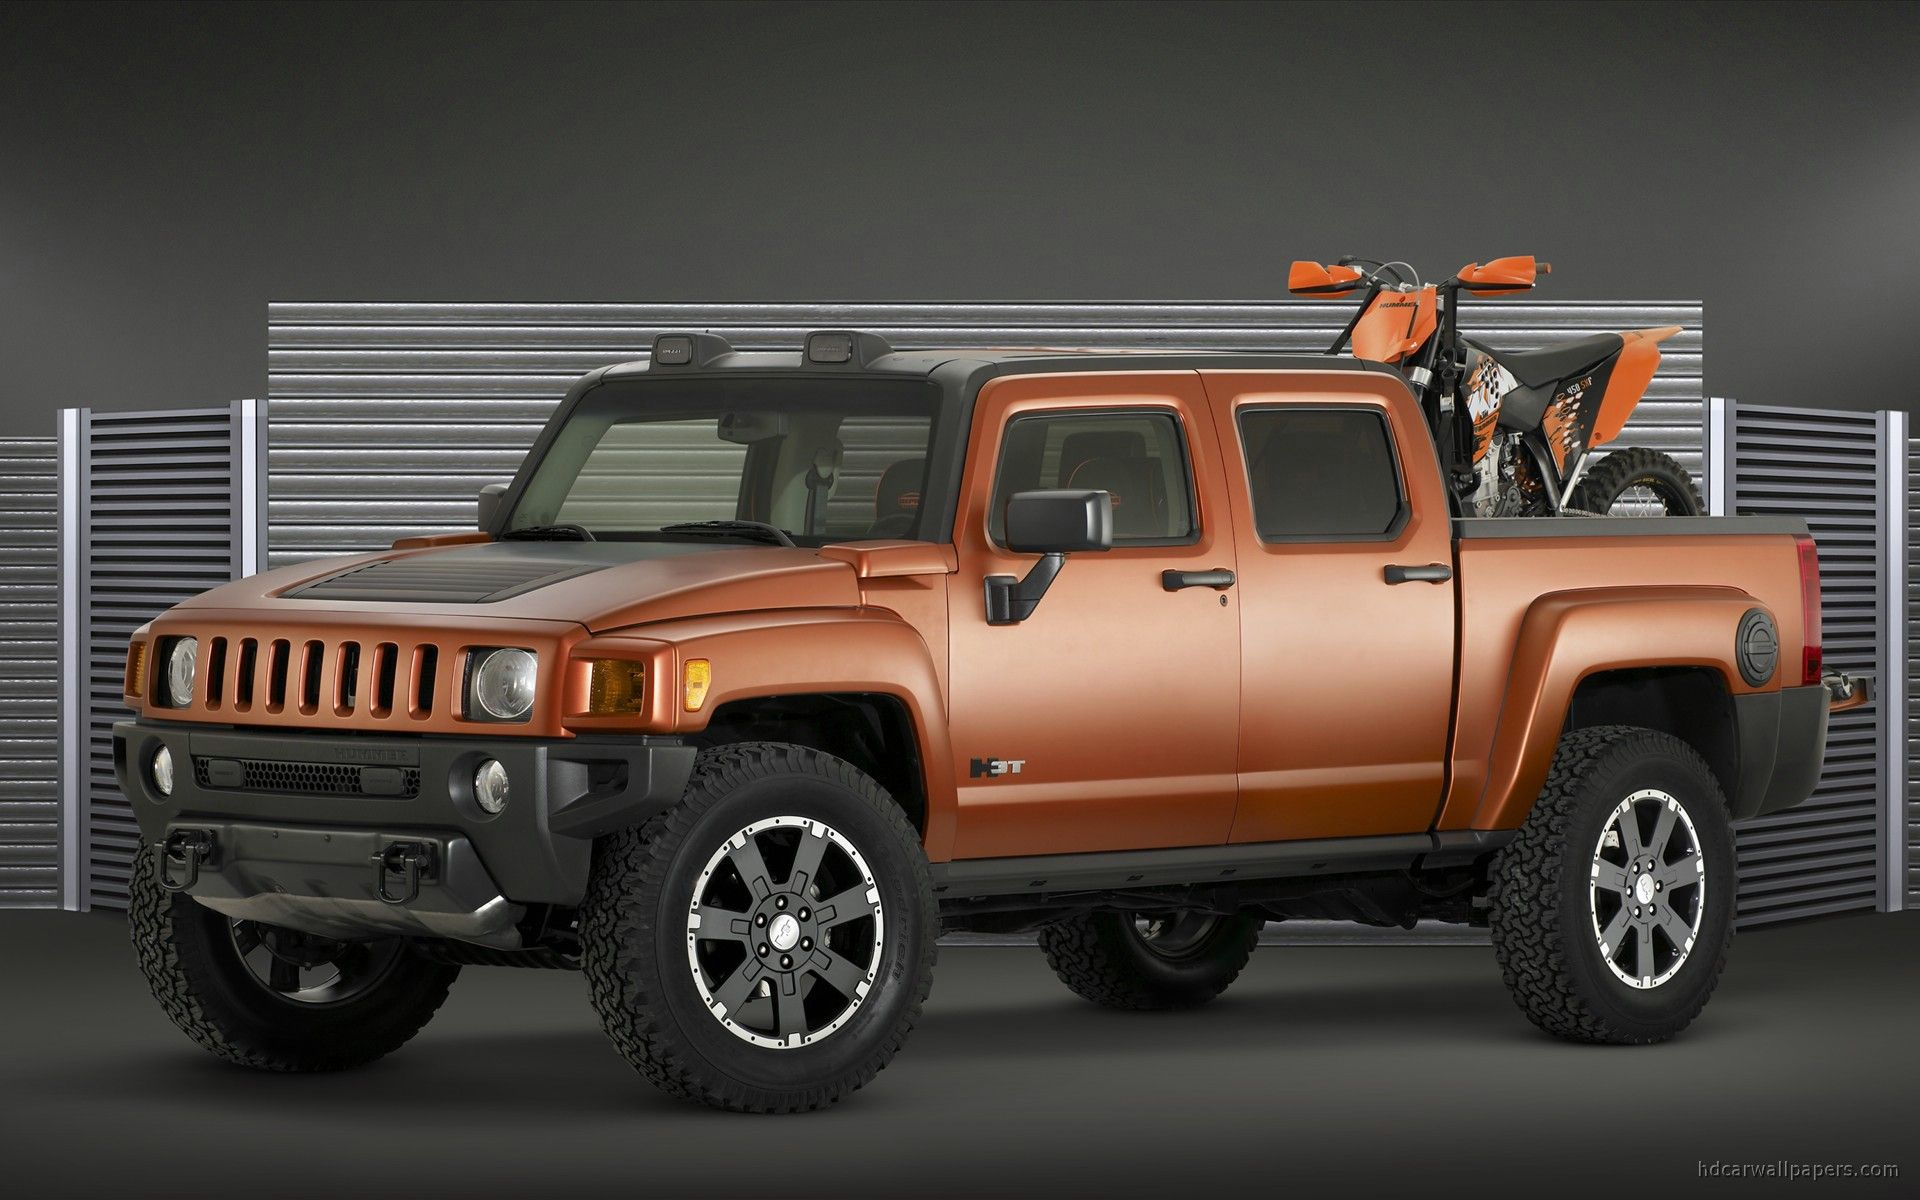 Pin By Hd Wallpapers On Bike Cars Wallpapers Pinterest Hummer